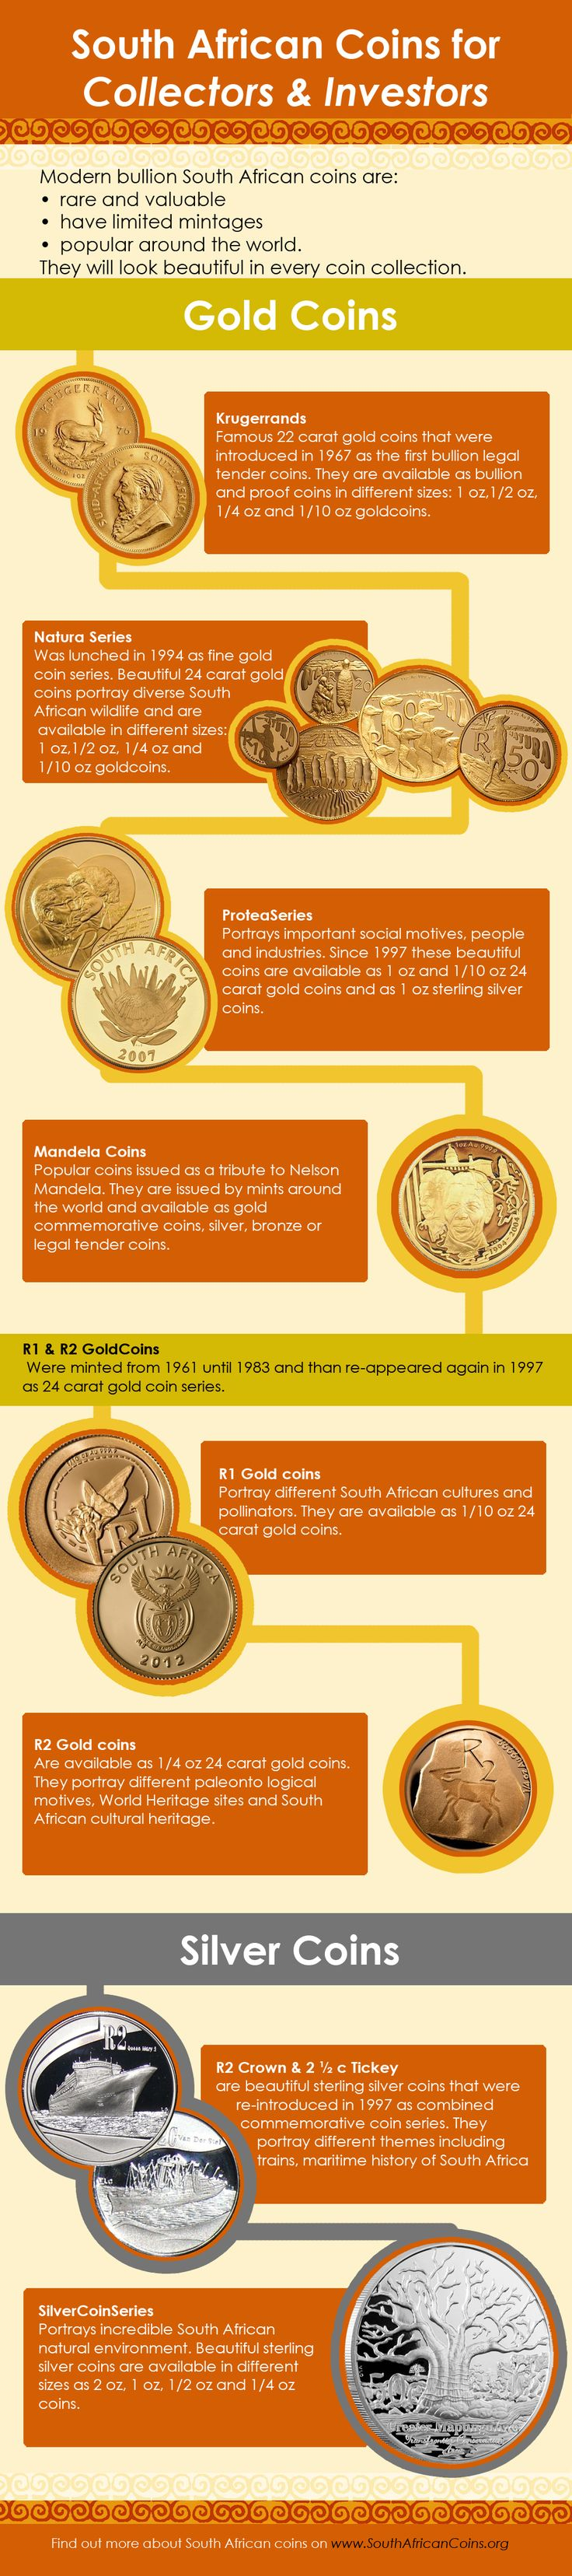 Discover valuable South African coins for collectors and investors. Gold and silver coins such as gold Krugerrands, Mandela coins... #infografía